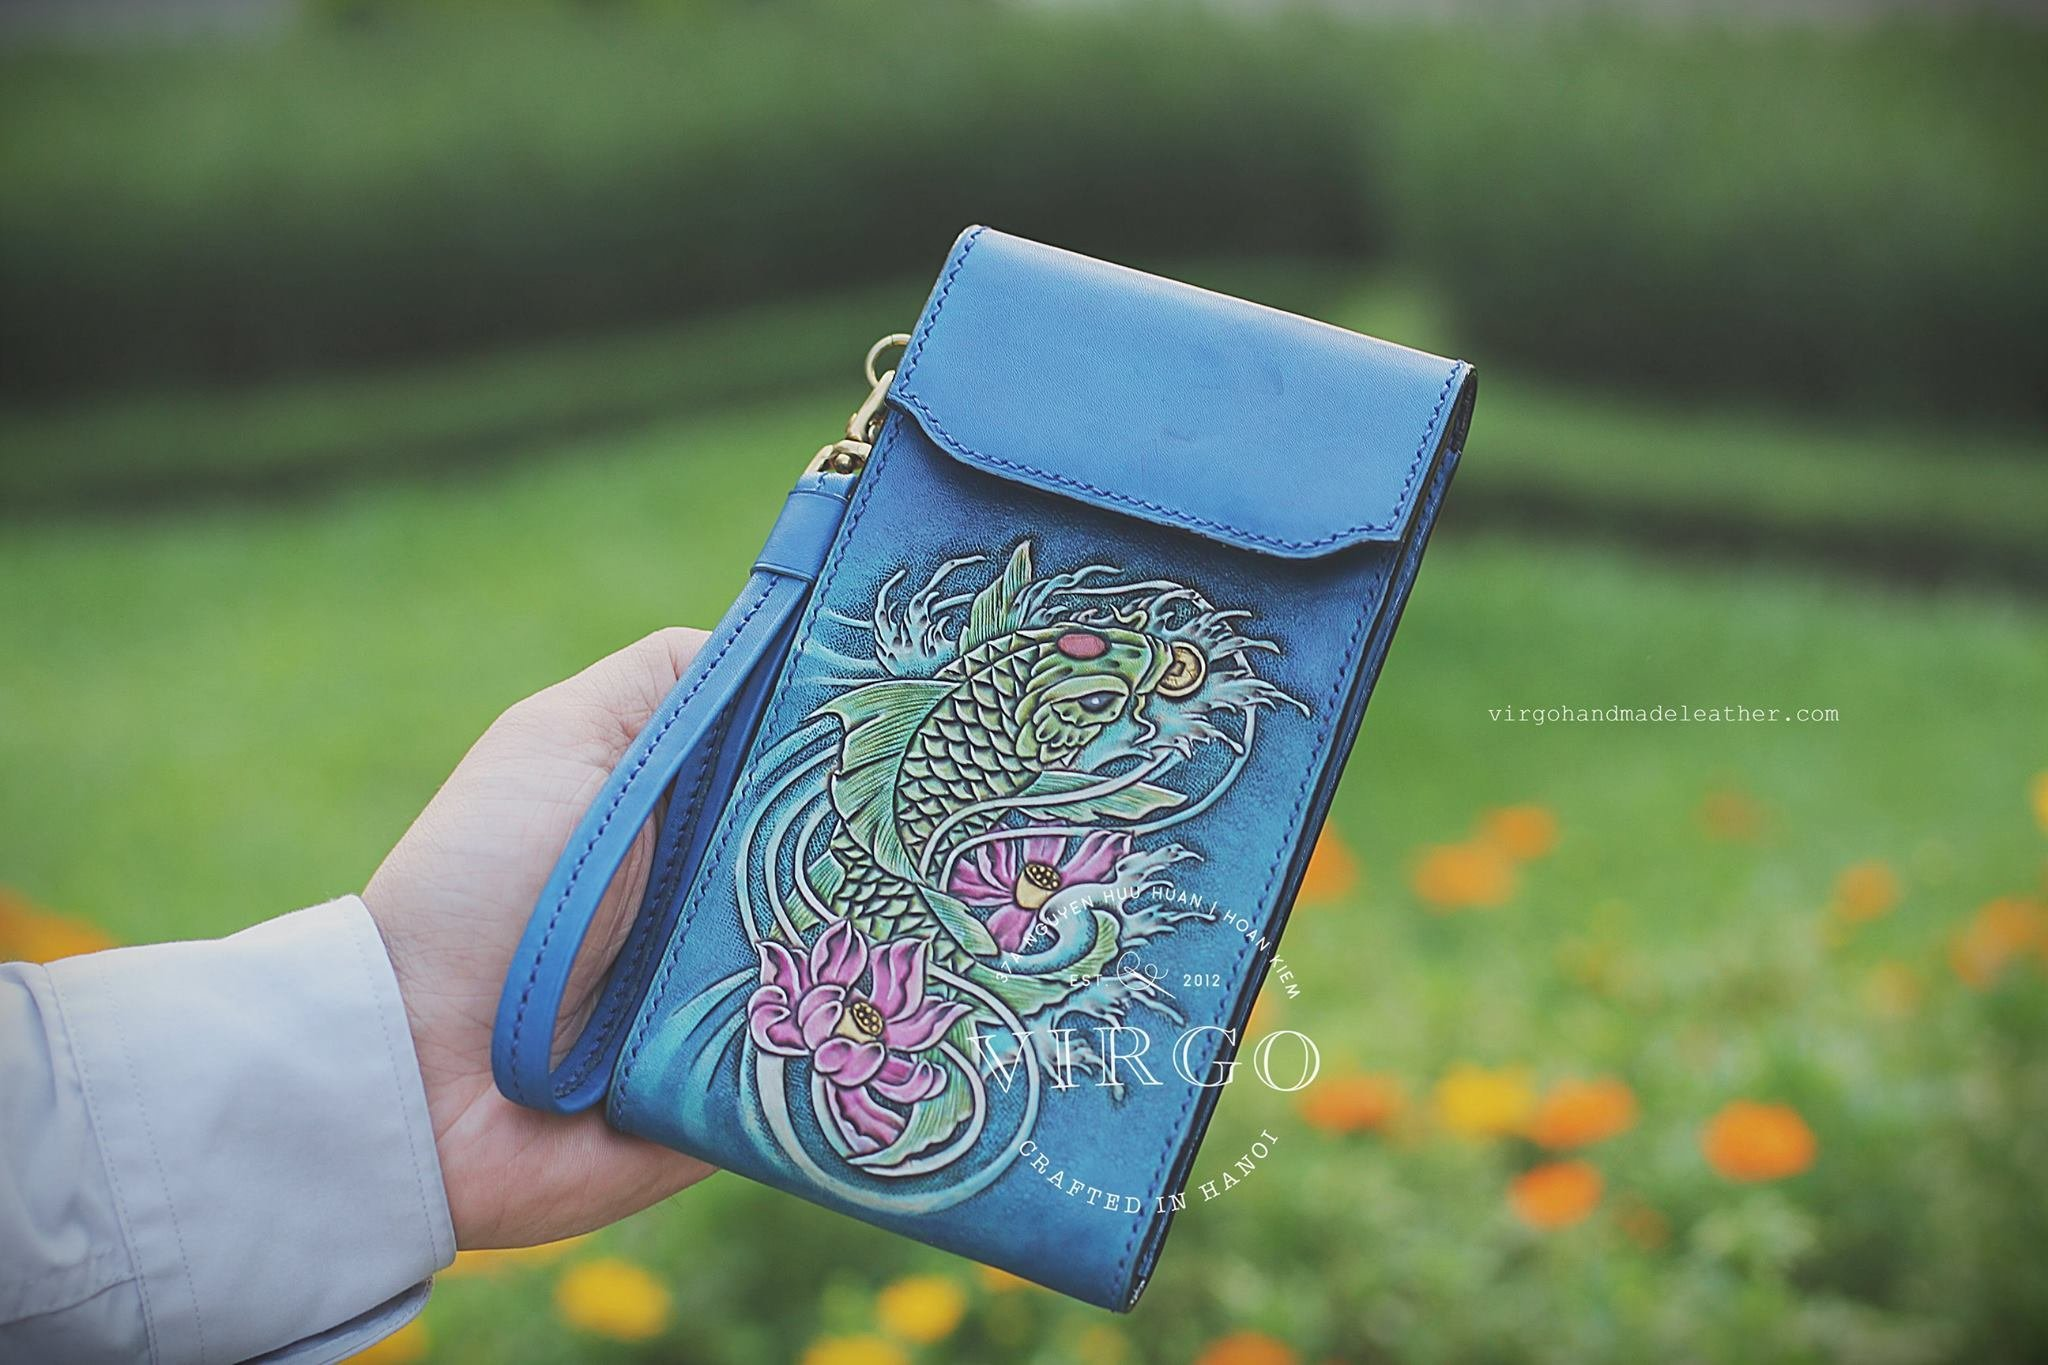 Koi Fish hand tooled phone cover with detachable wrist strap for women | Personalized Vintage vegetable tanned leather handmade cover